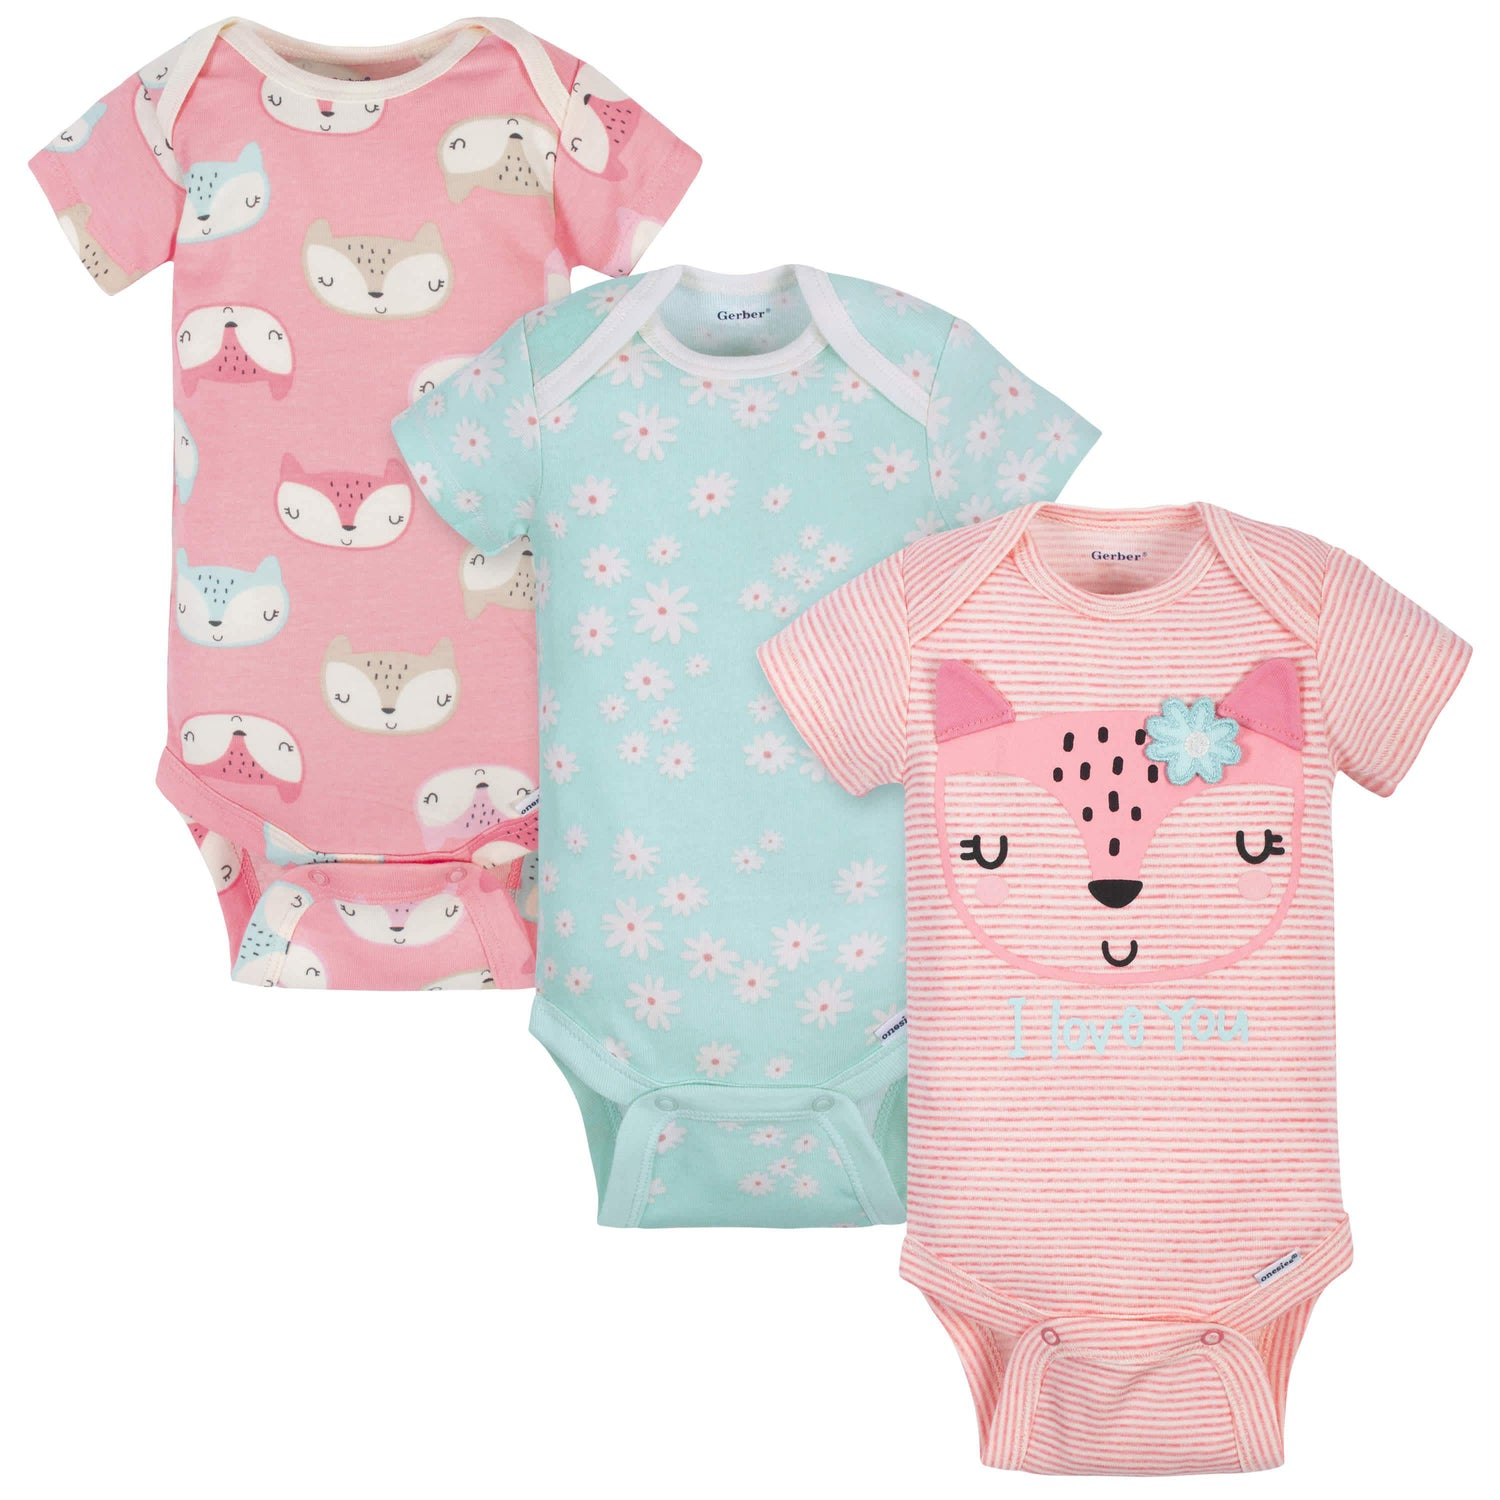 Gerber Baby Girls Onesies 3 Pack NEW Bodysuits Size 12 Month Butterfly